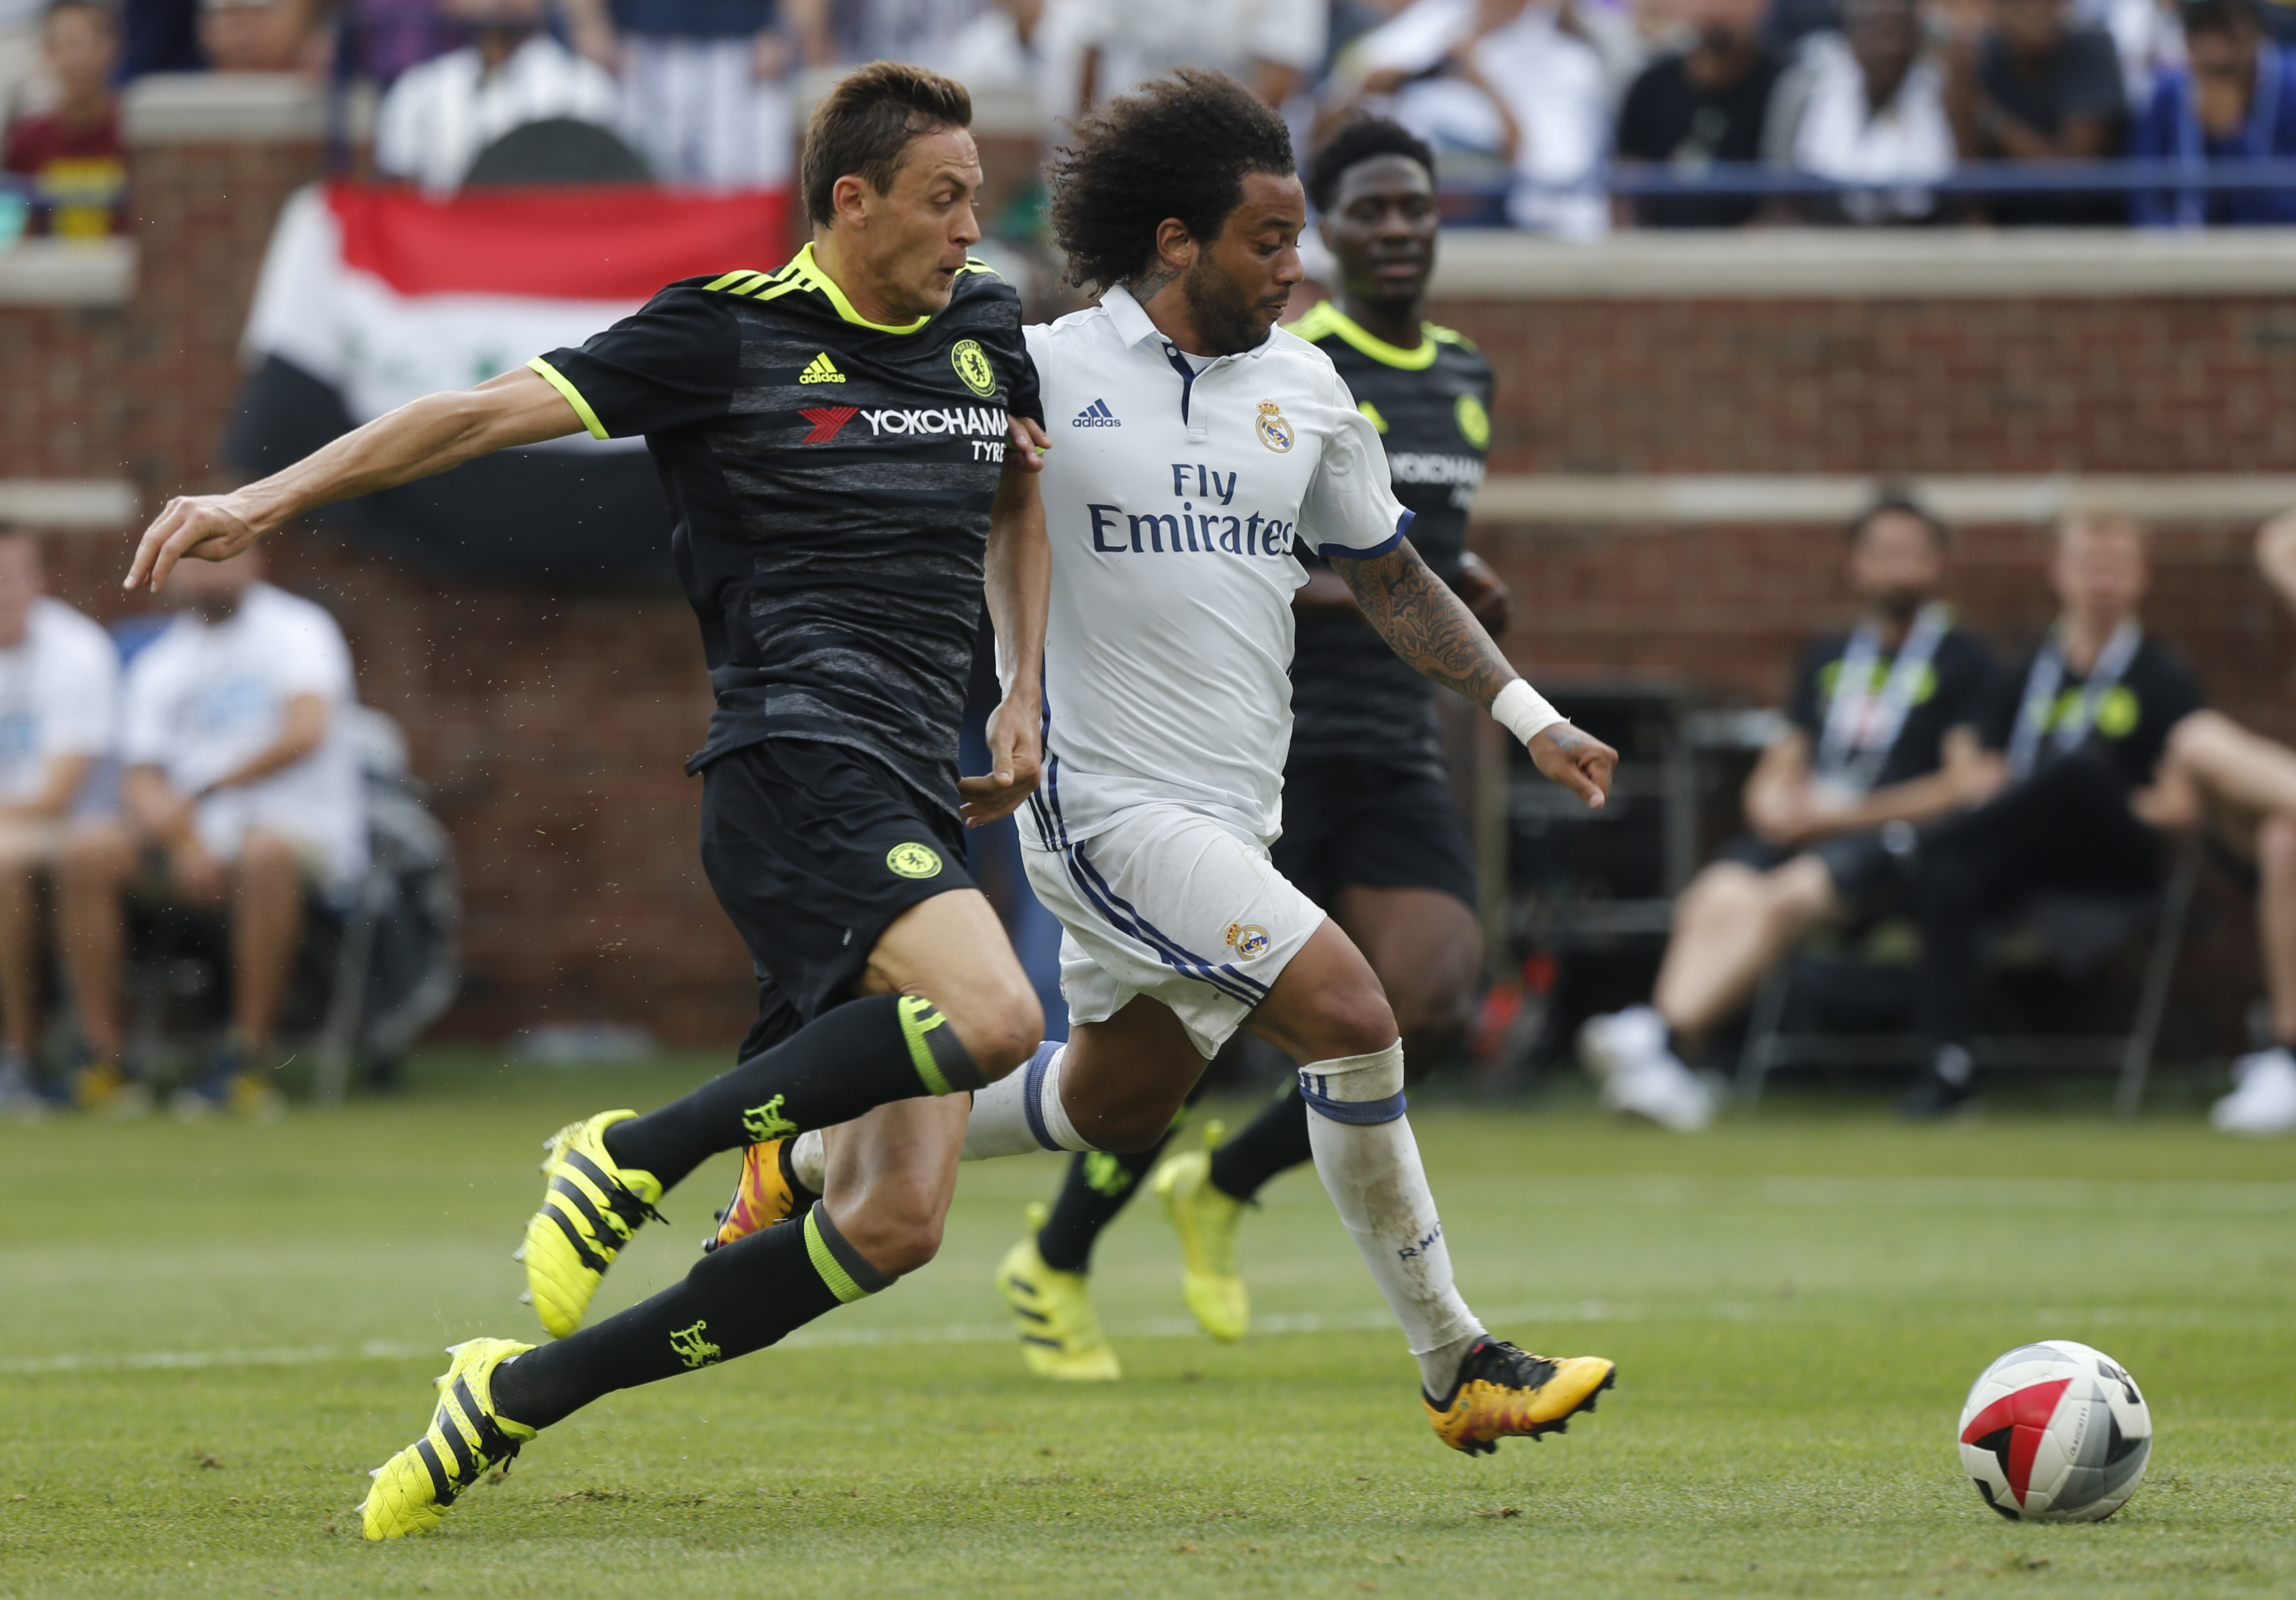 Real Madrid's Marcelo puts his side ahead with smashing effort against Chelsea